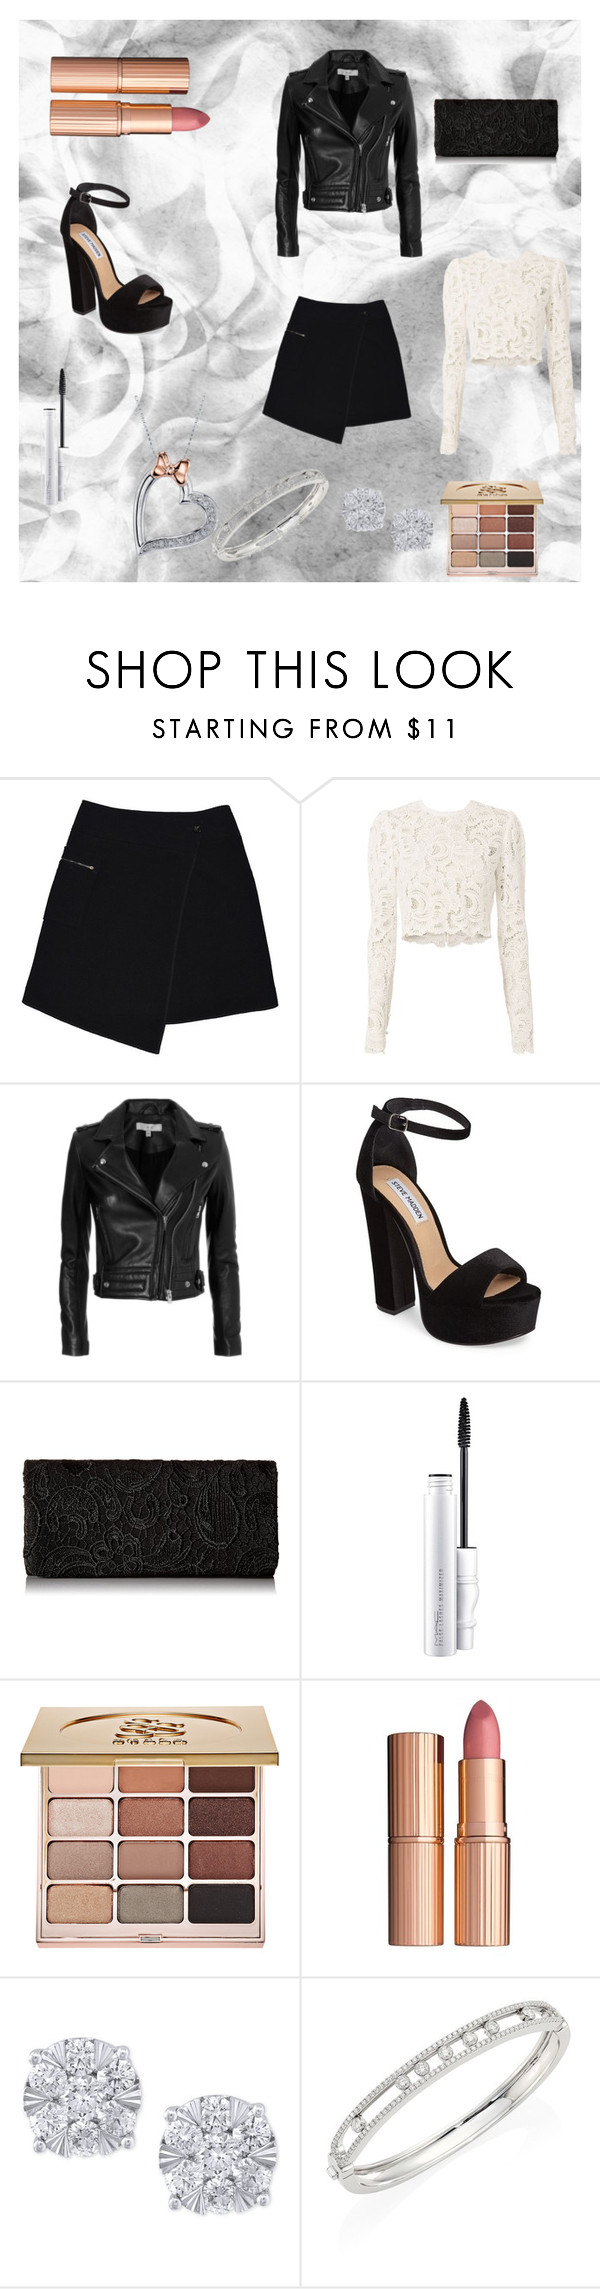 """""""Fancy"""" by kirstie04 ❤ liked on Polyvore featuring MARC CAIN, A.L.C., IRO, Steve Madden, MAC Cosmetics, Stila, Effy Jewelry, Messika, Disney and cute"""